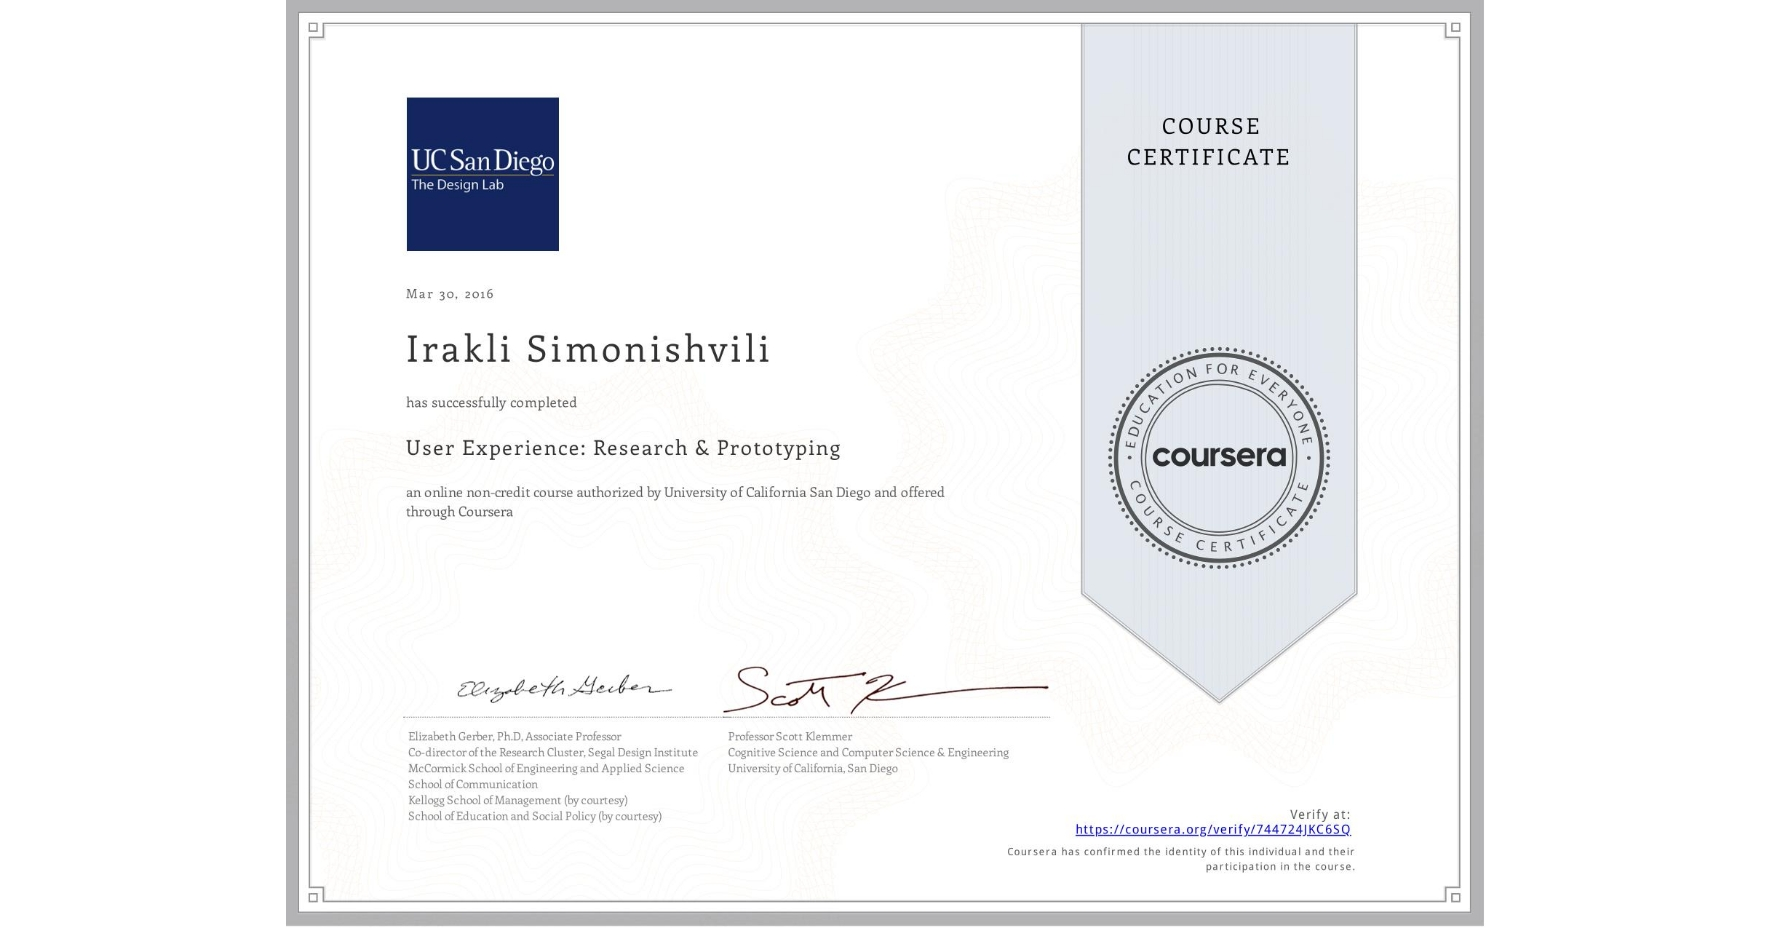 View certificate for Irakli Simonishvili, User Experience: Research & Prototyping, an online non-credit course authorized by University of California San Diego and offered through Coursera